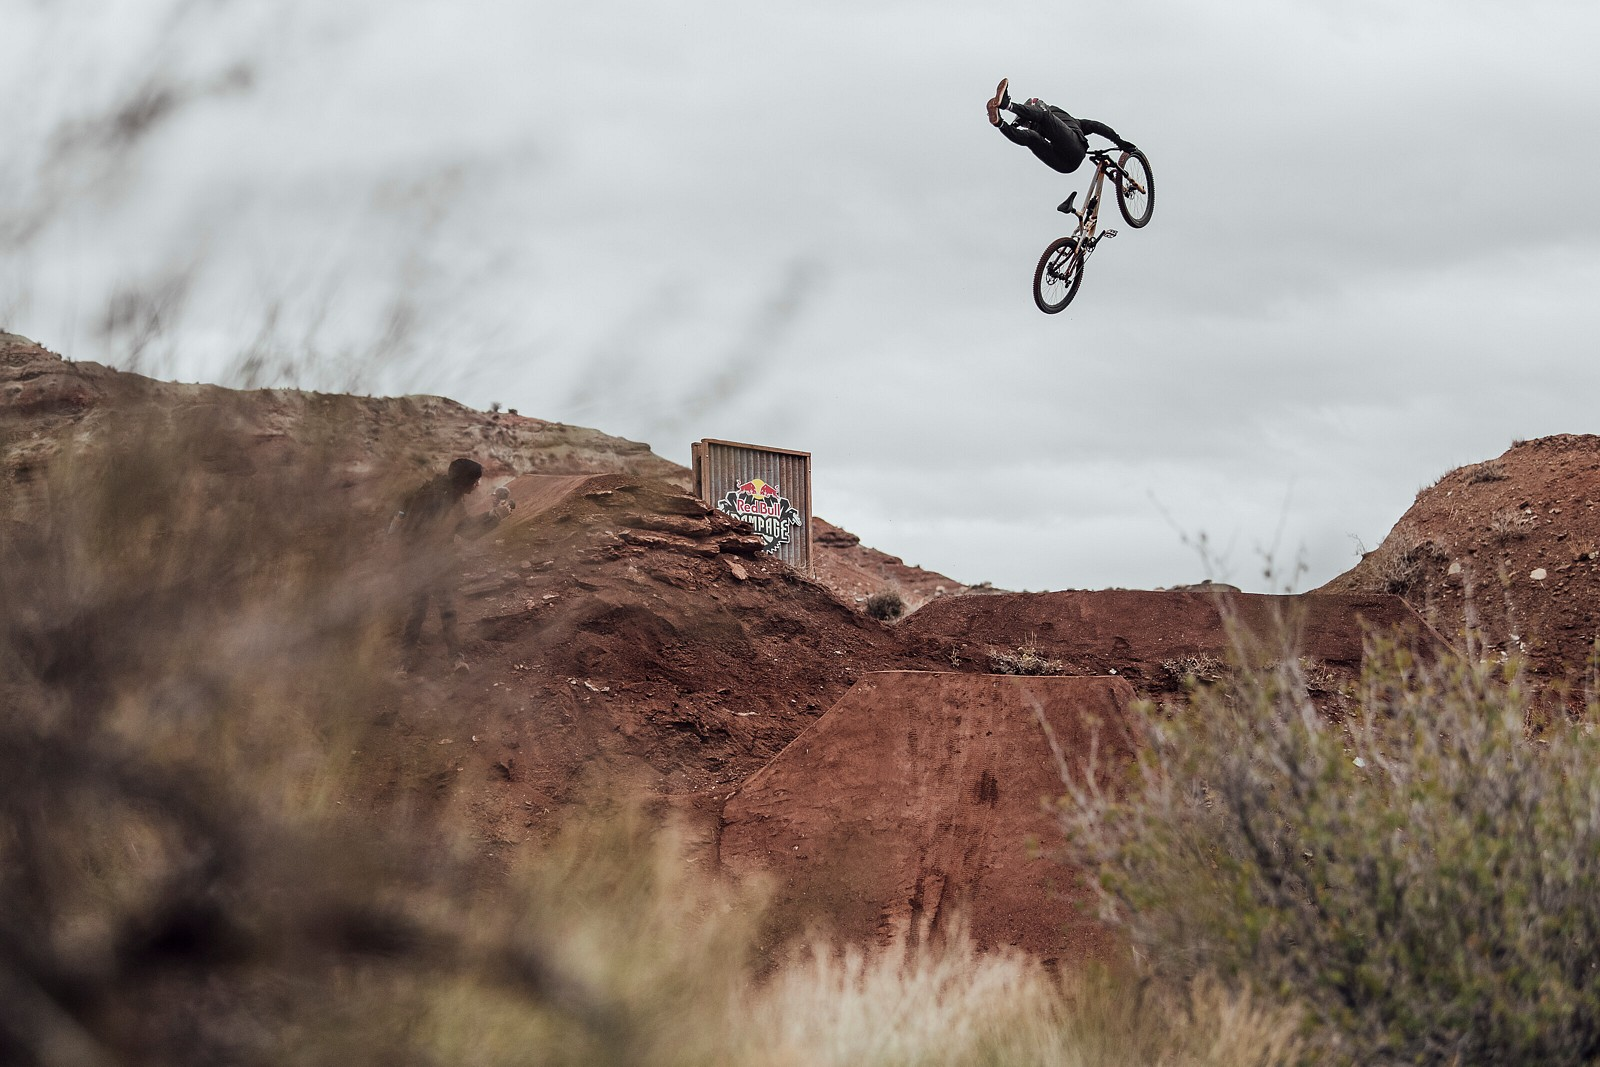 Andreu Lacondeguy - 2021 Red Bull Rampage Photos - Mountain Biking Pictures - Vital MTB